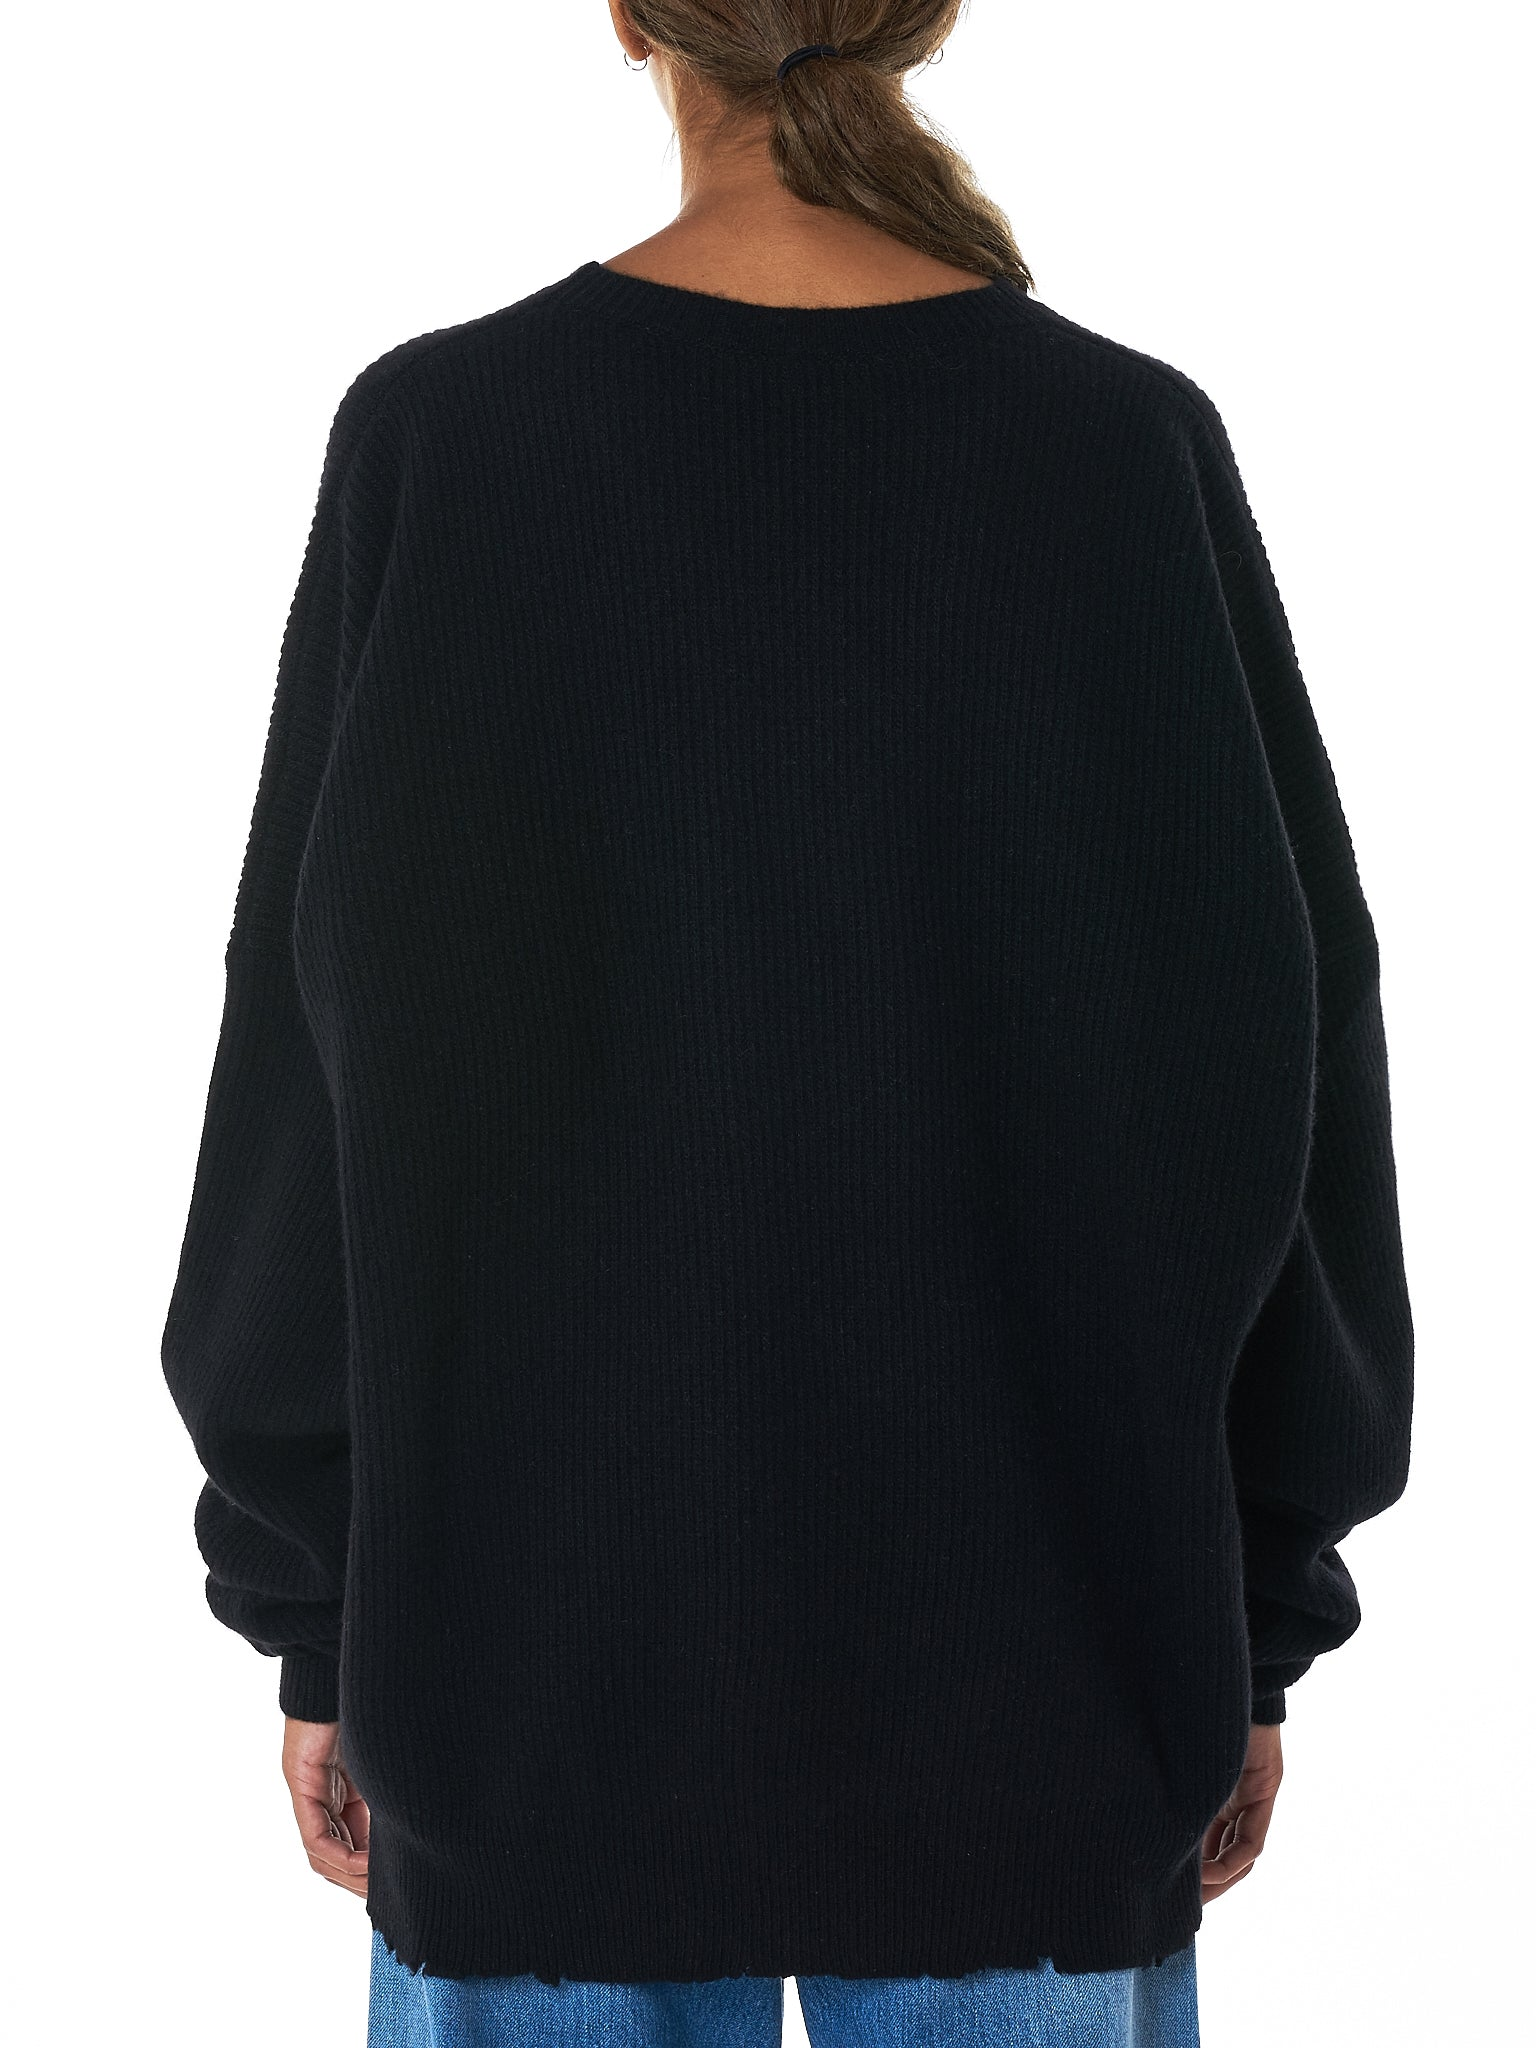 Unravel Sweater - Hlorenzo Back